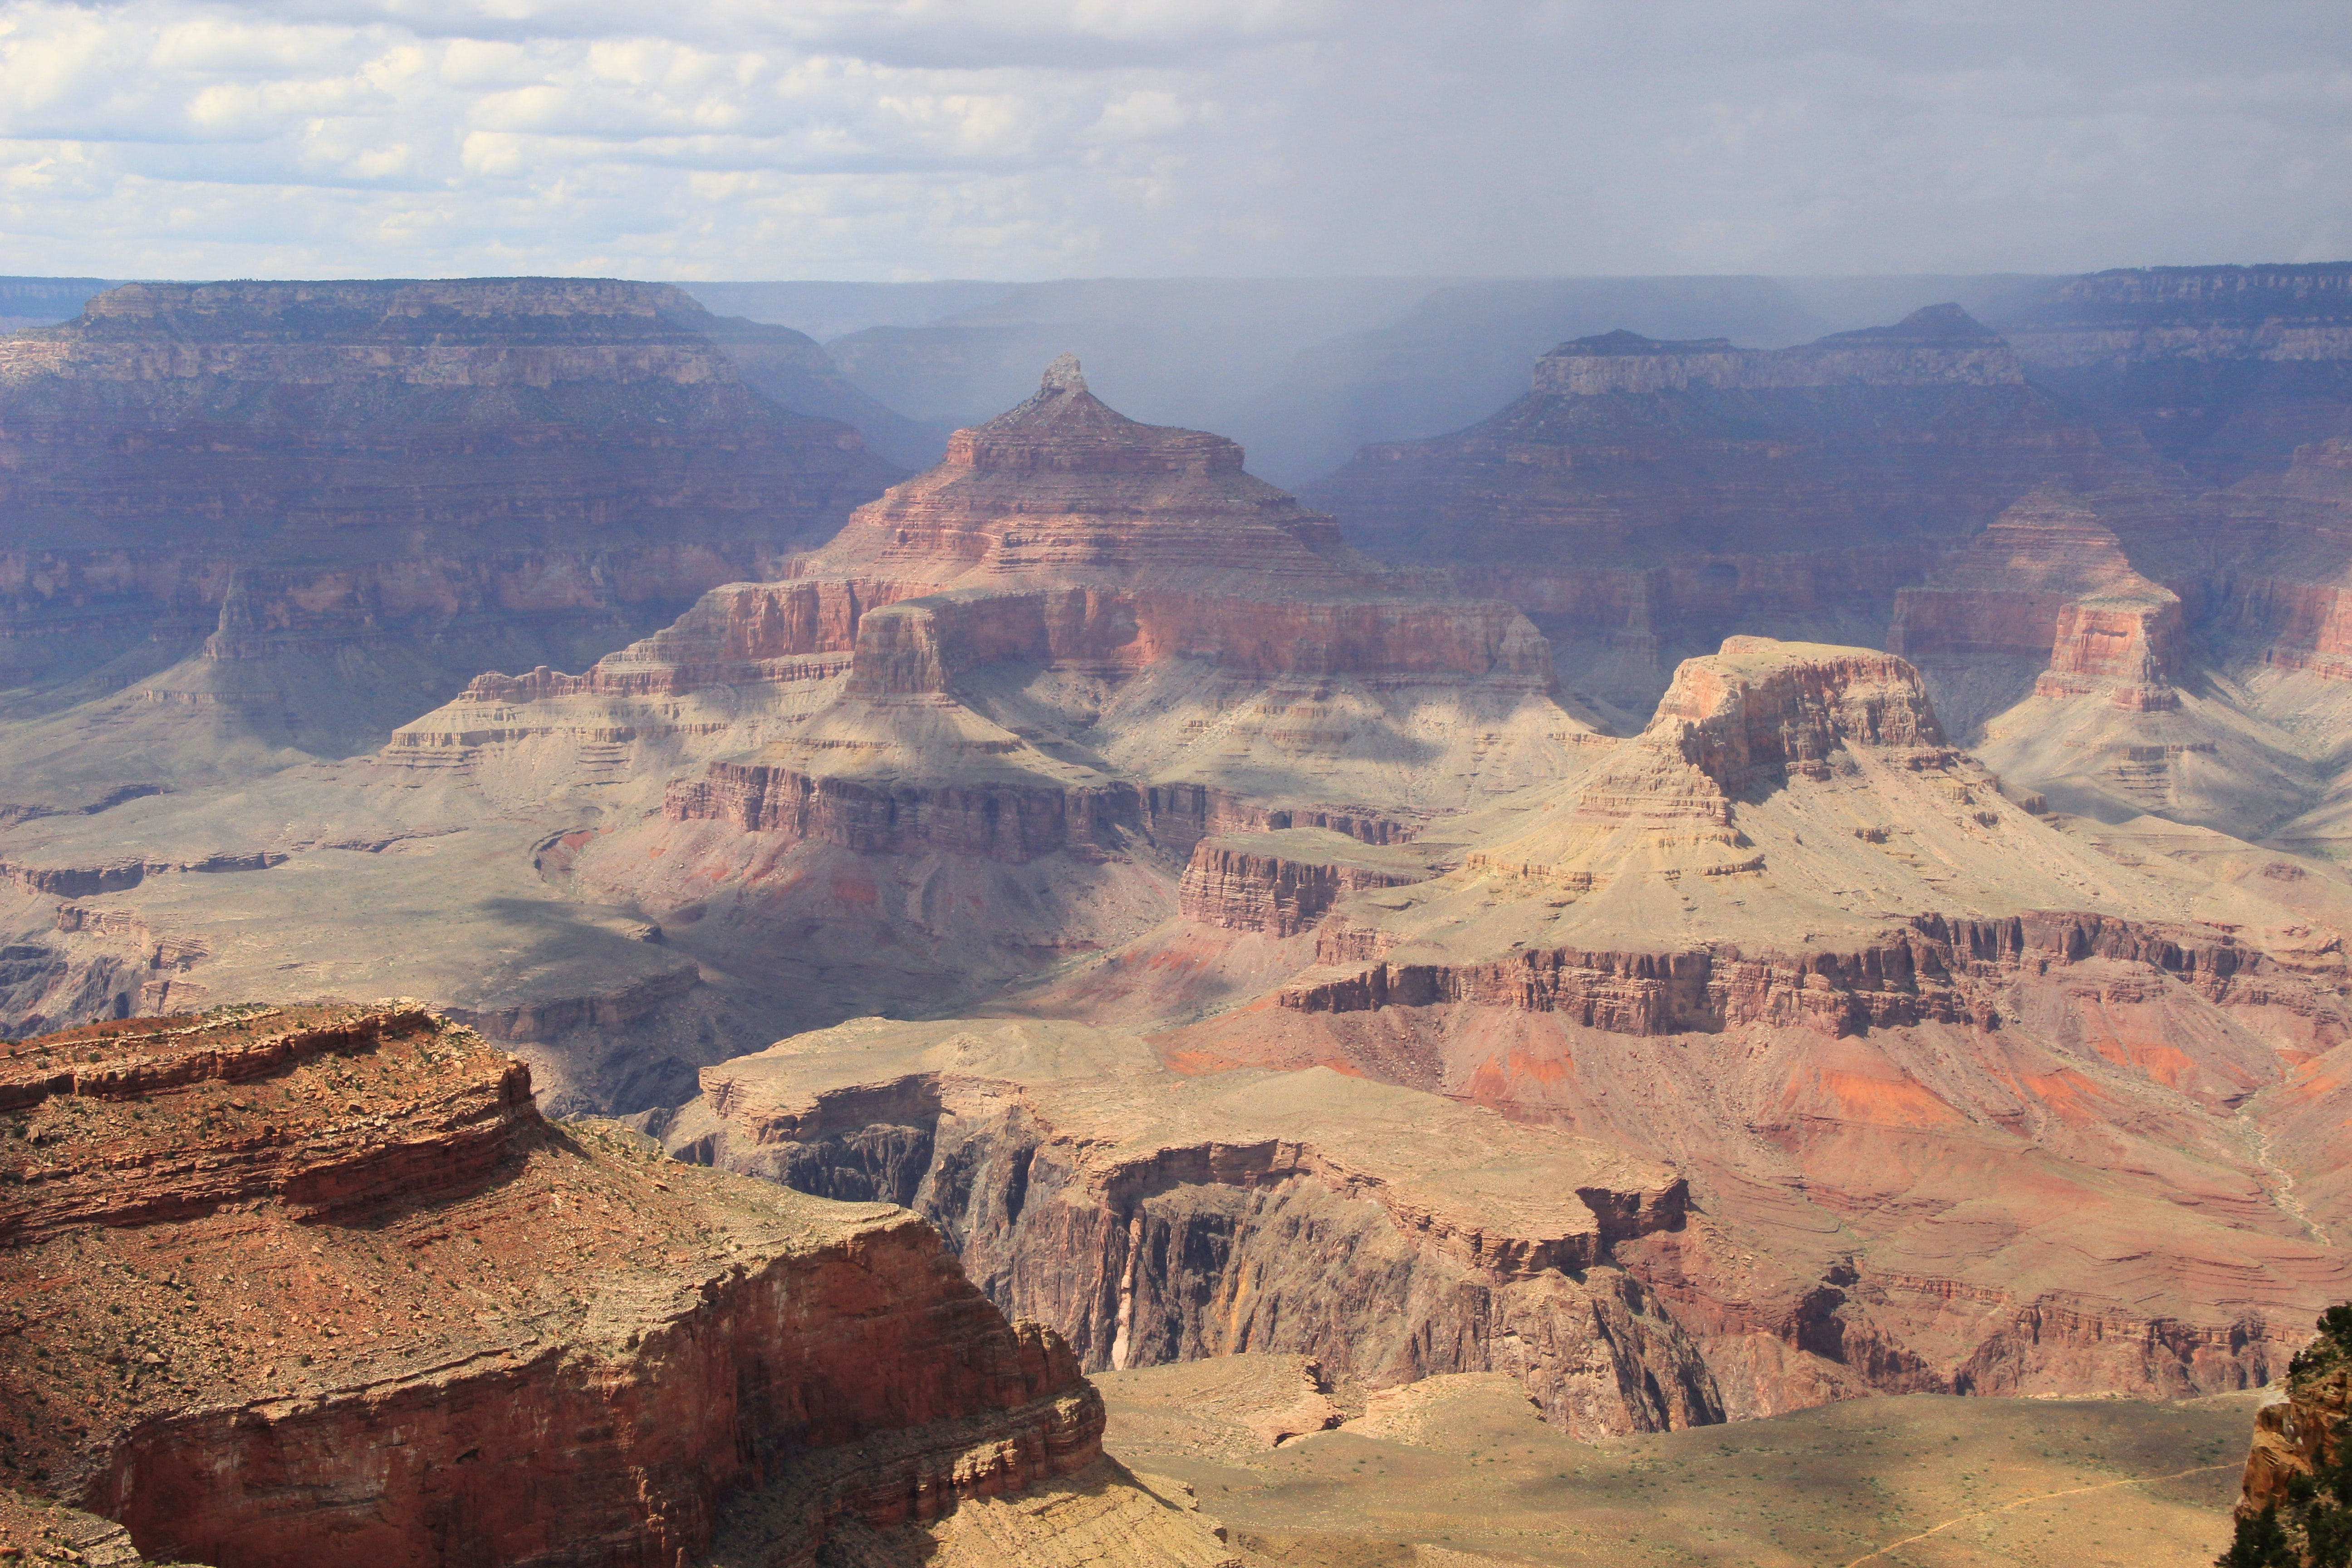 Grand Canyon landscape with orange mountain peaks and rocky valleys